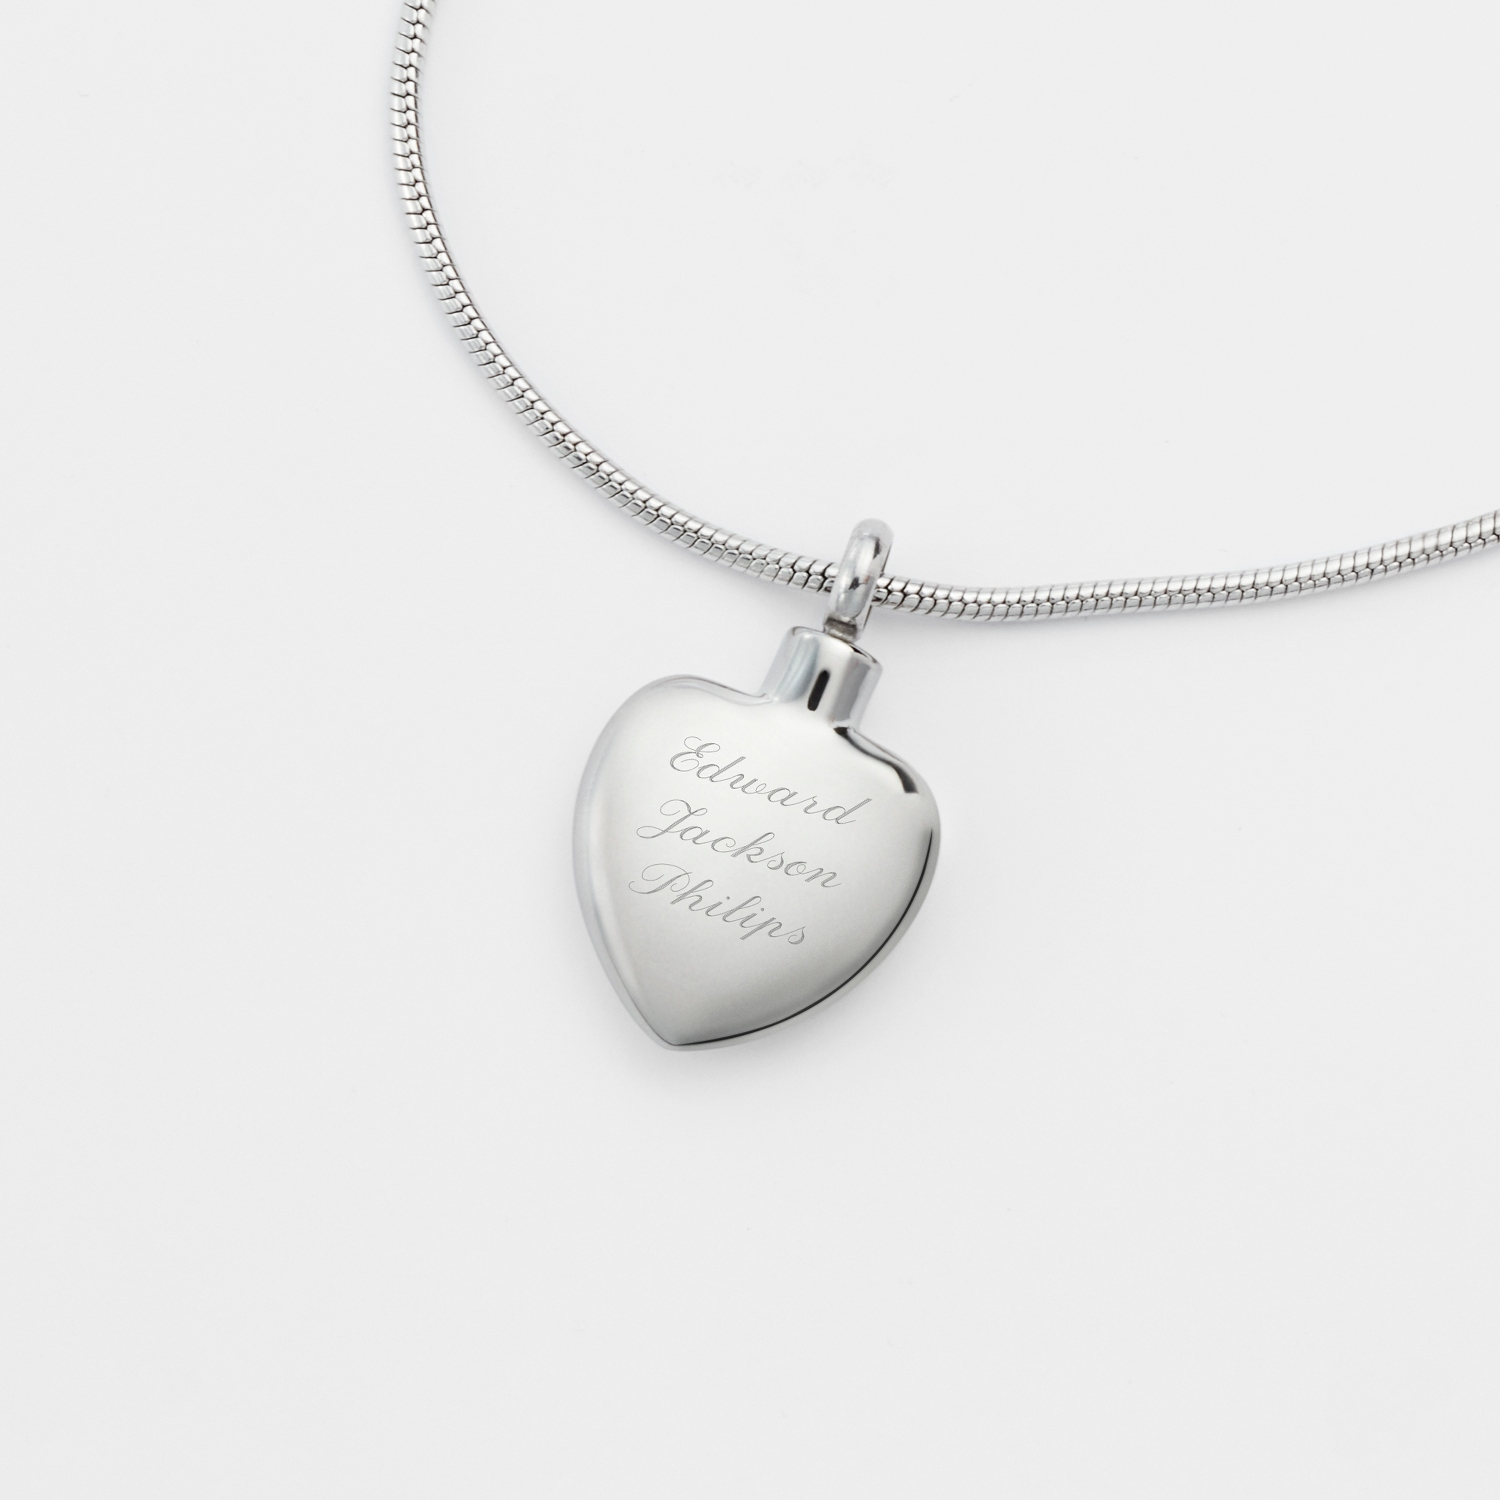 necklace necklaces products womens and name jewelry funeral sports penny date memorial mens